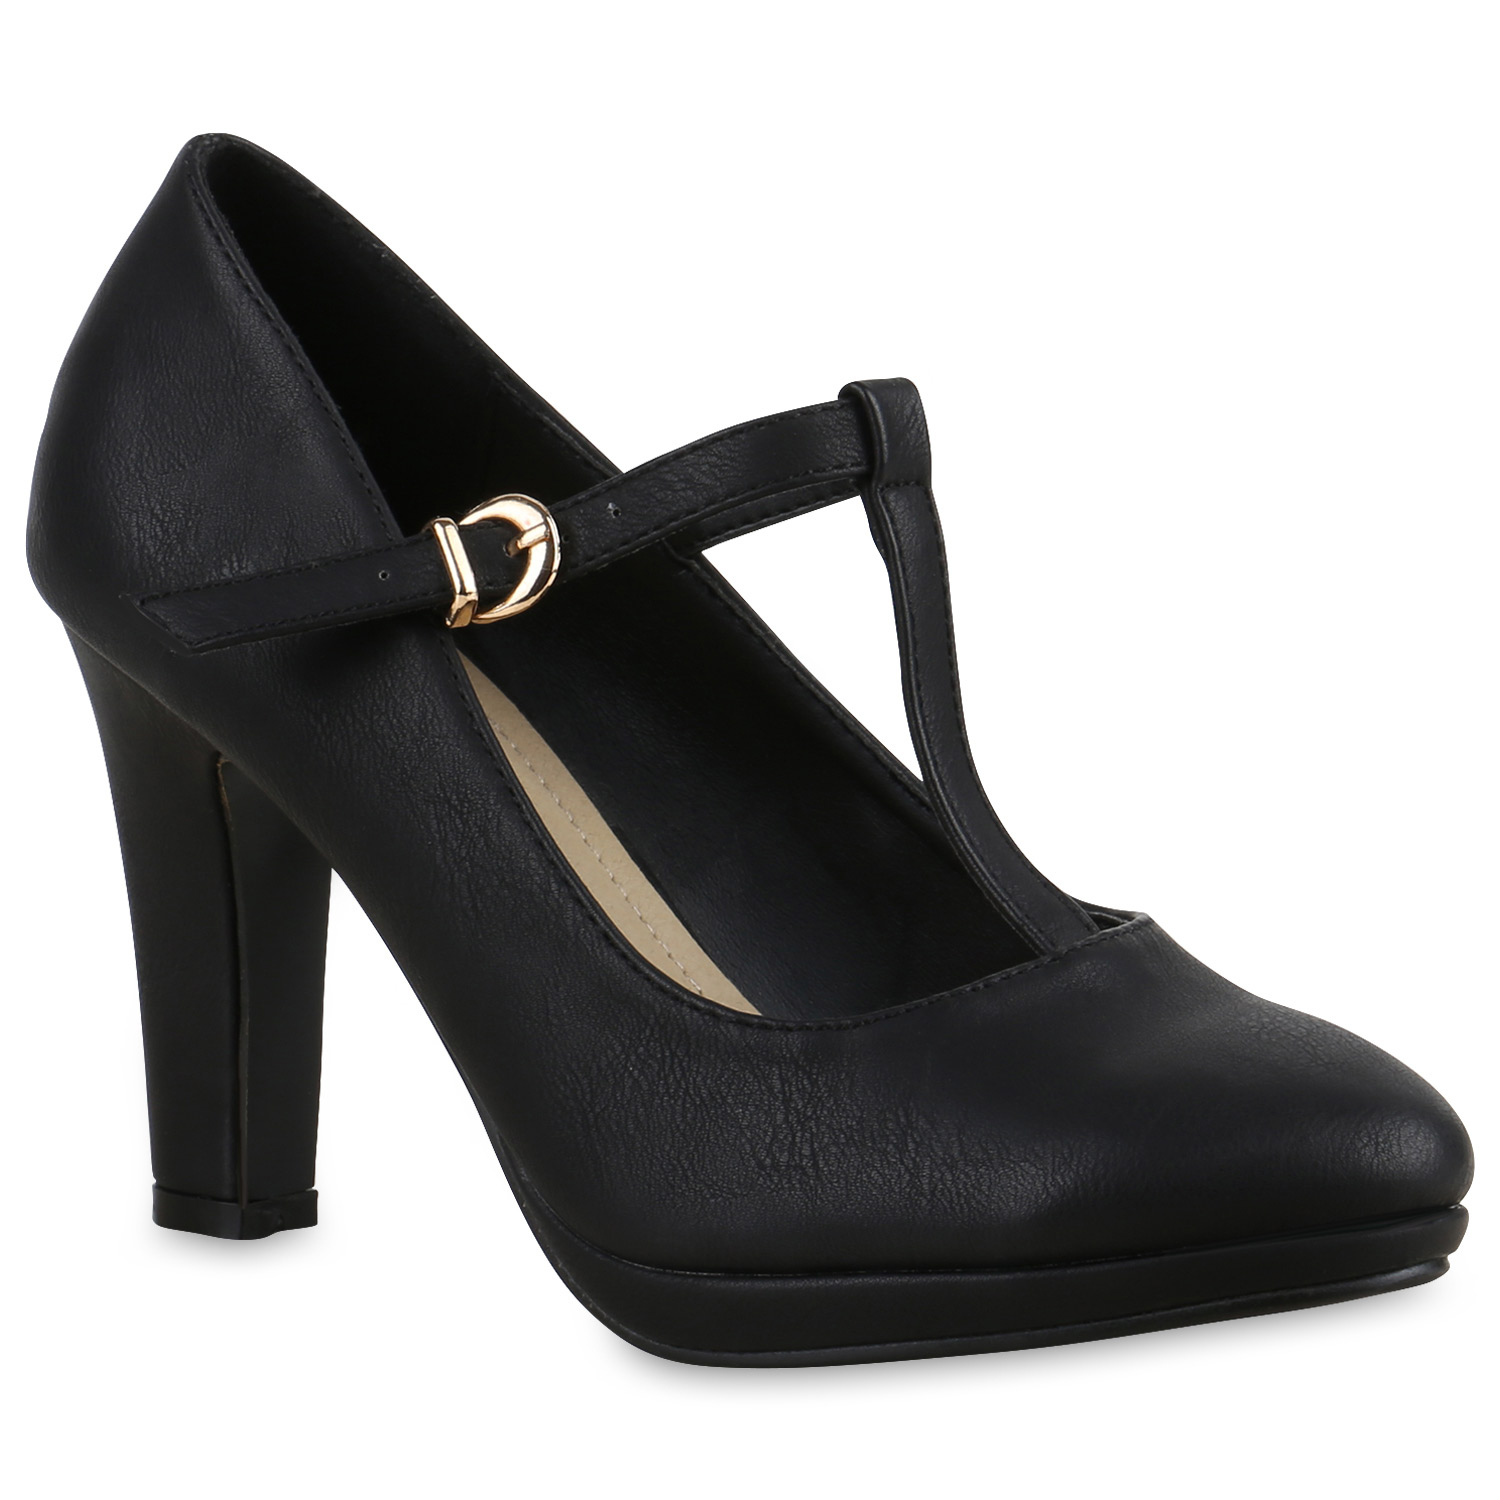 Pumps für Frauen - Damen Pumps Mary Janes Schwarz  - Onlineshop Stiefelparadies